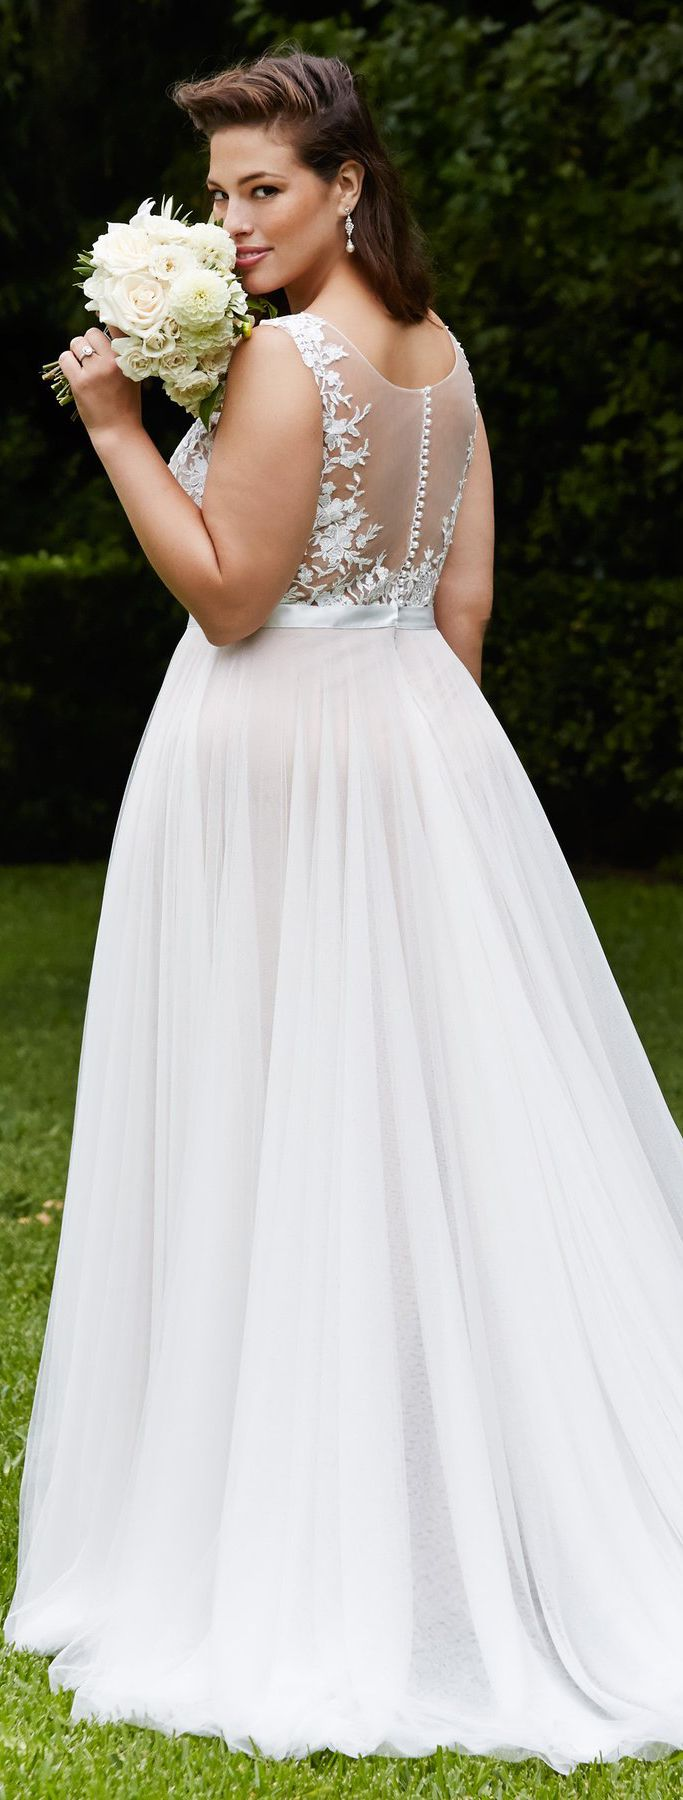 256 best plus size wedding gowns images on pinterest wedding 20 gorgeous wedding gowns for curvy girls ombrellifo Gallery